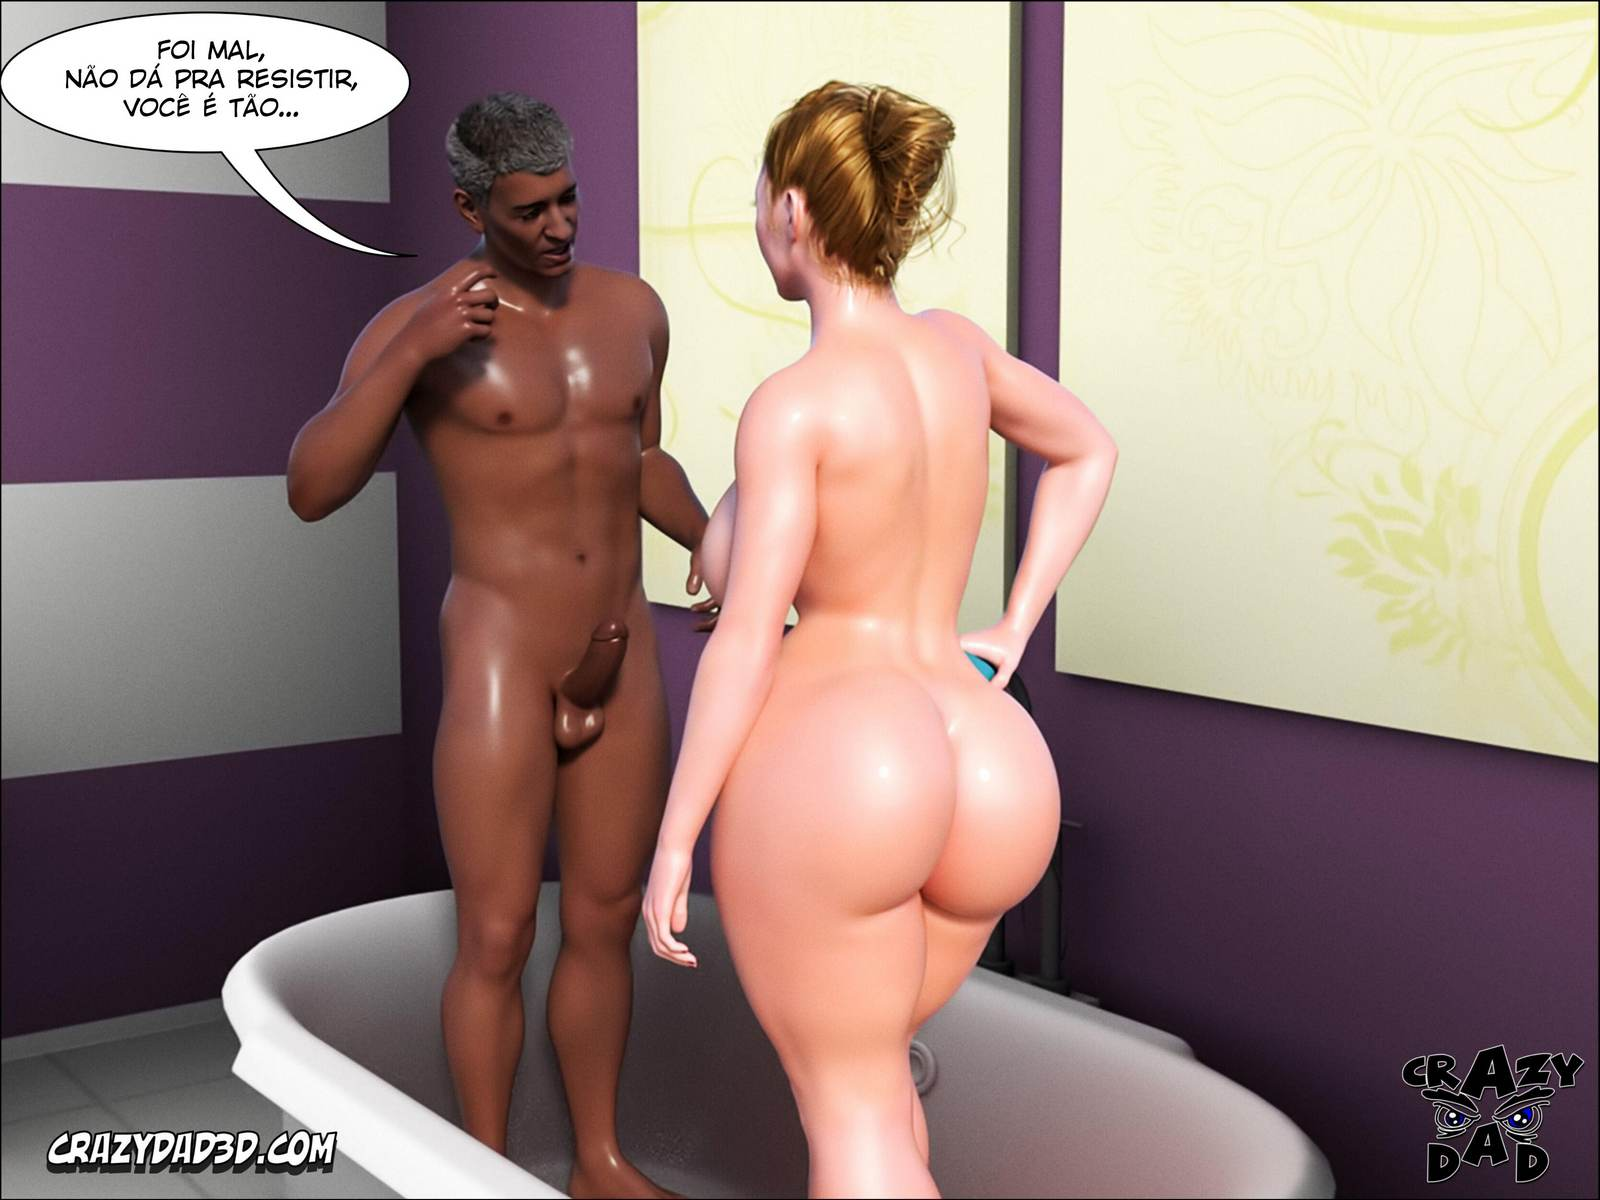 Father in Law at Home part 2 Hentai pt br 50 - interracial, hentai, 3d